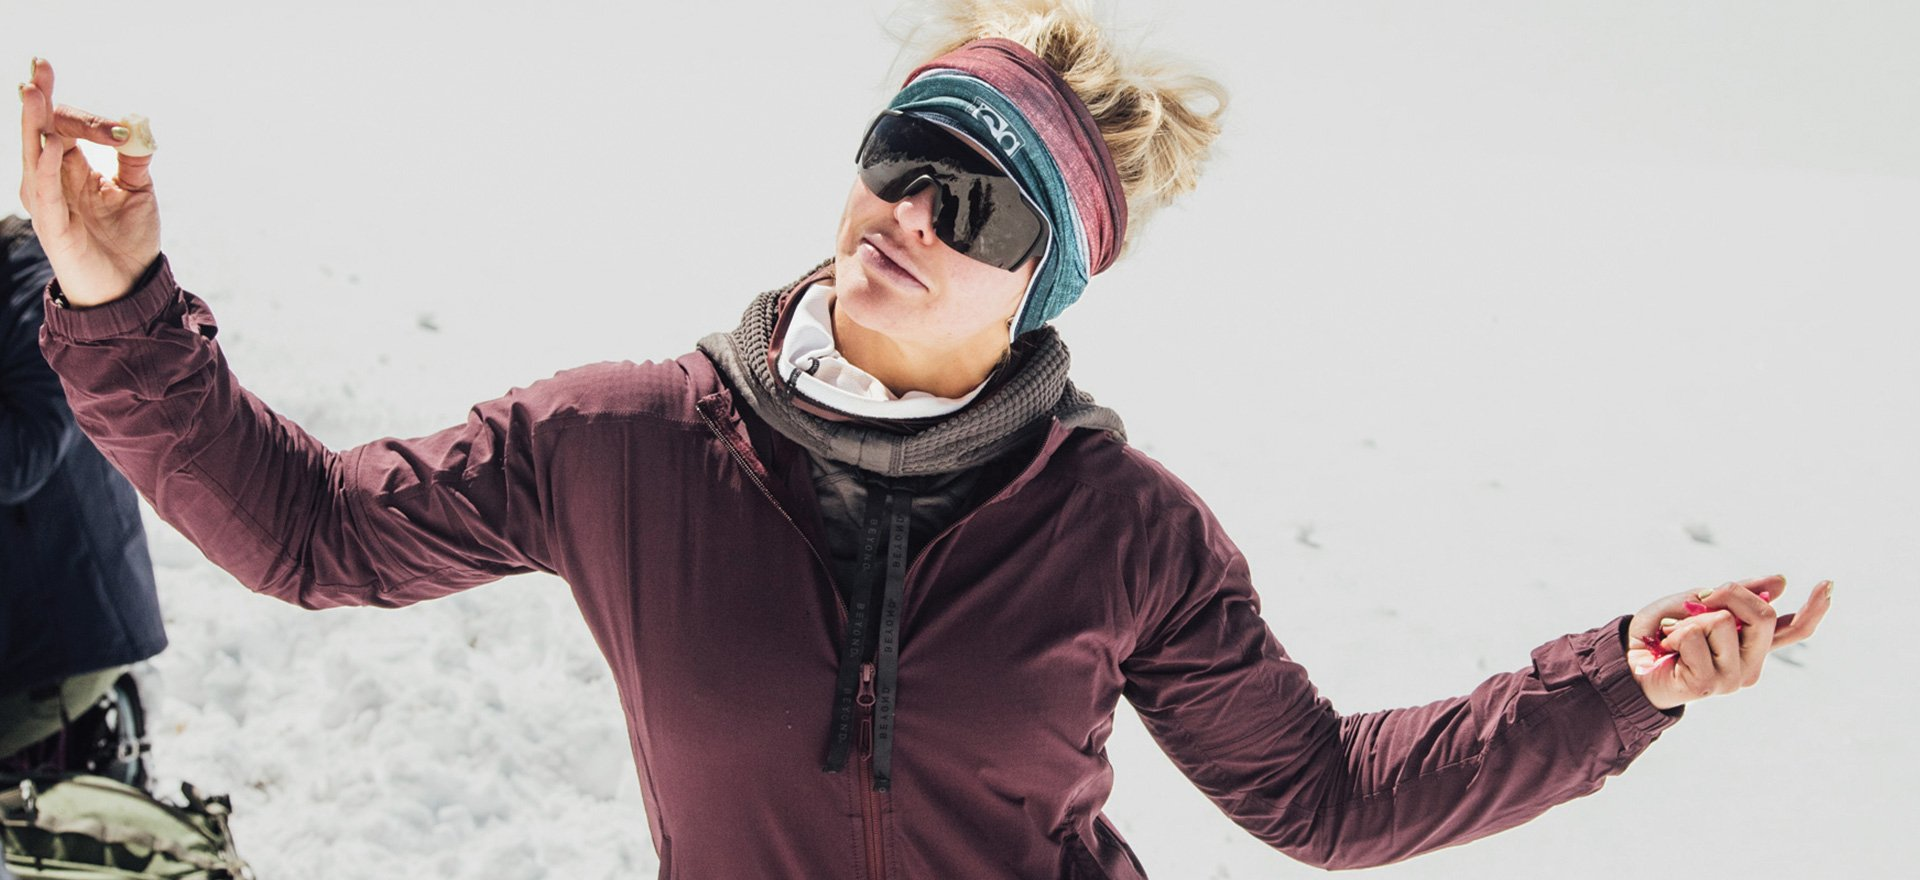 Beyond Clothing - Cold Weather Clothing Systems - Made in